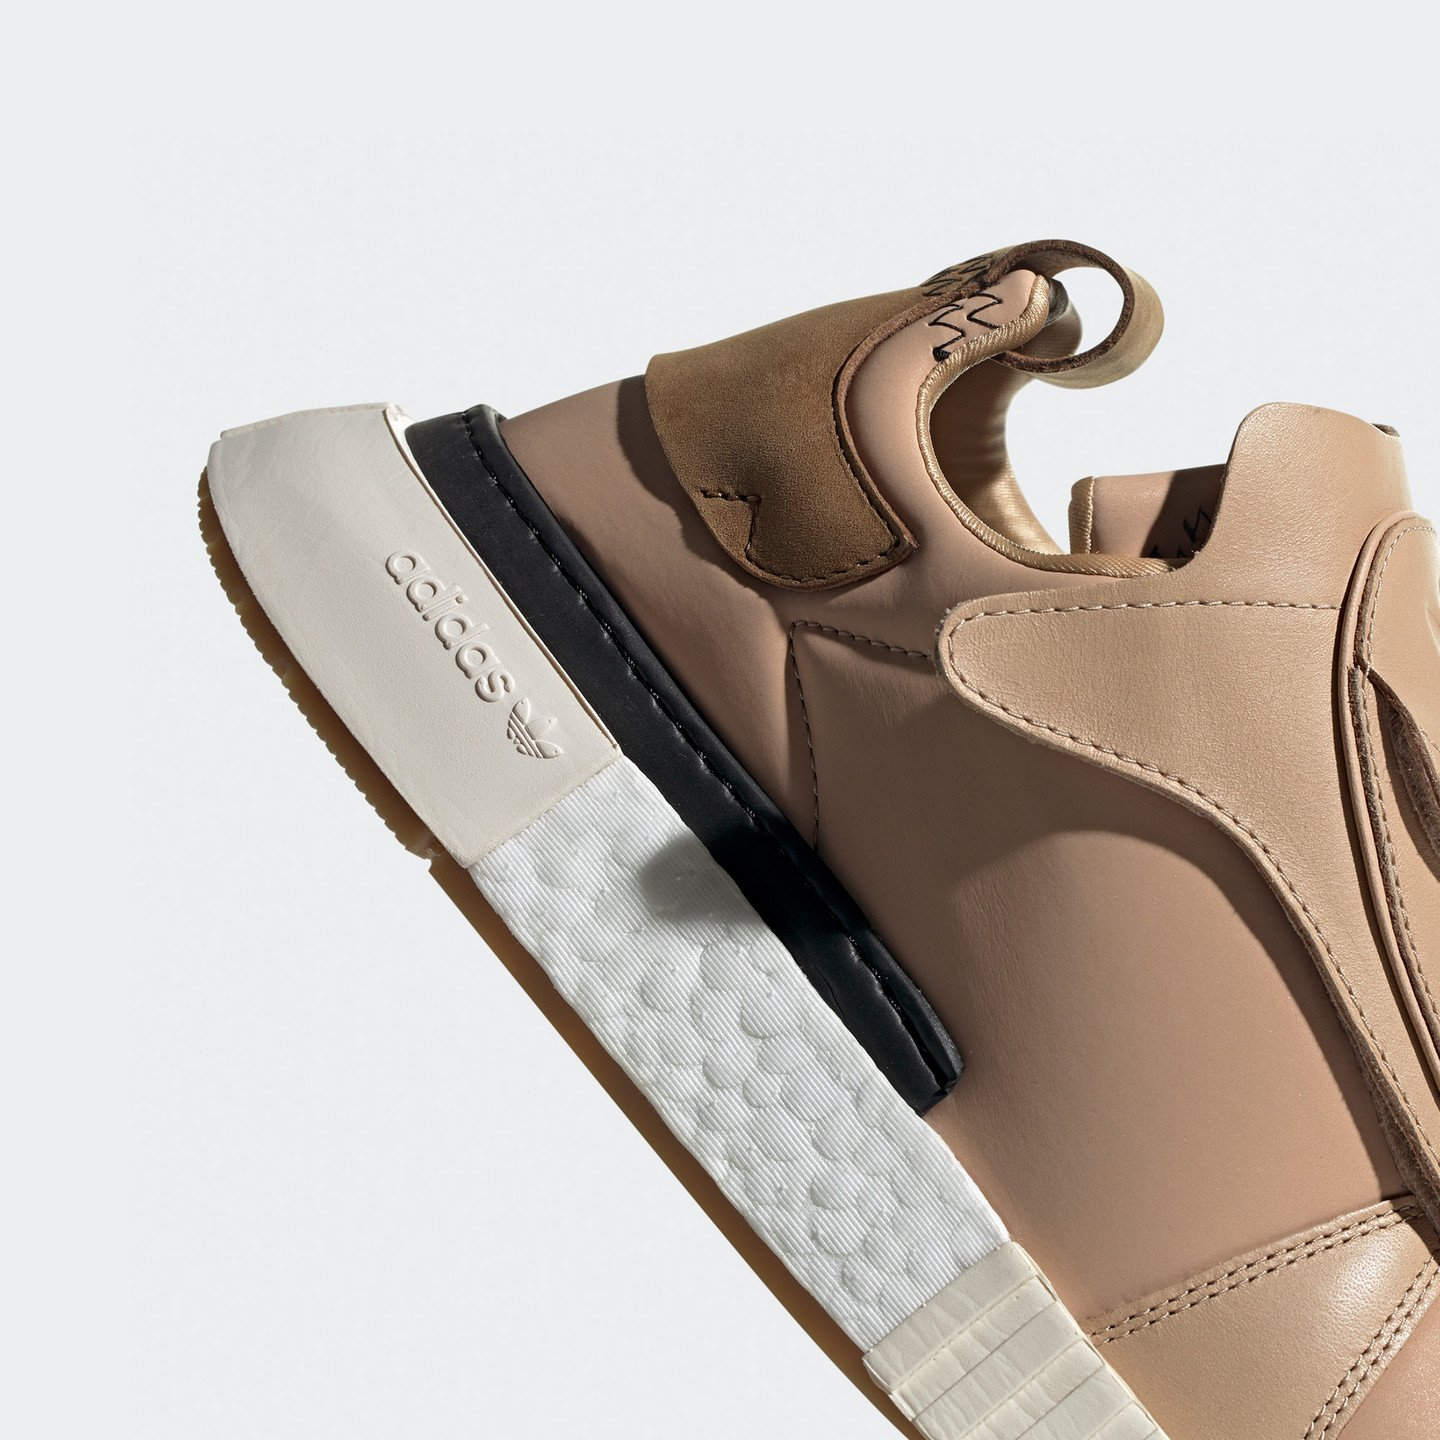 Adidas Futurepacer Pale Nude / Core Black / Raw Amber BD7914